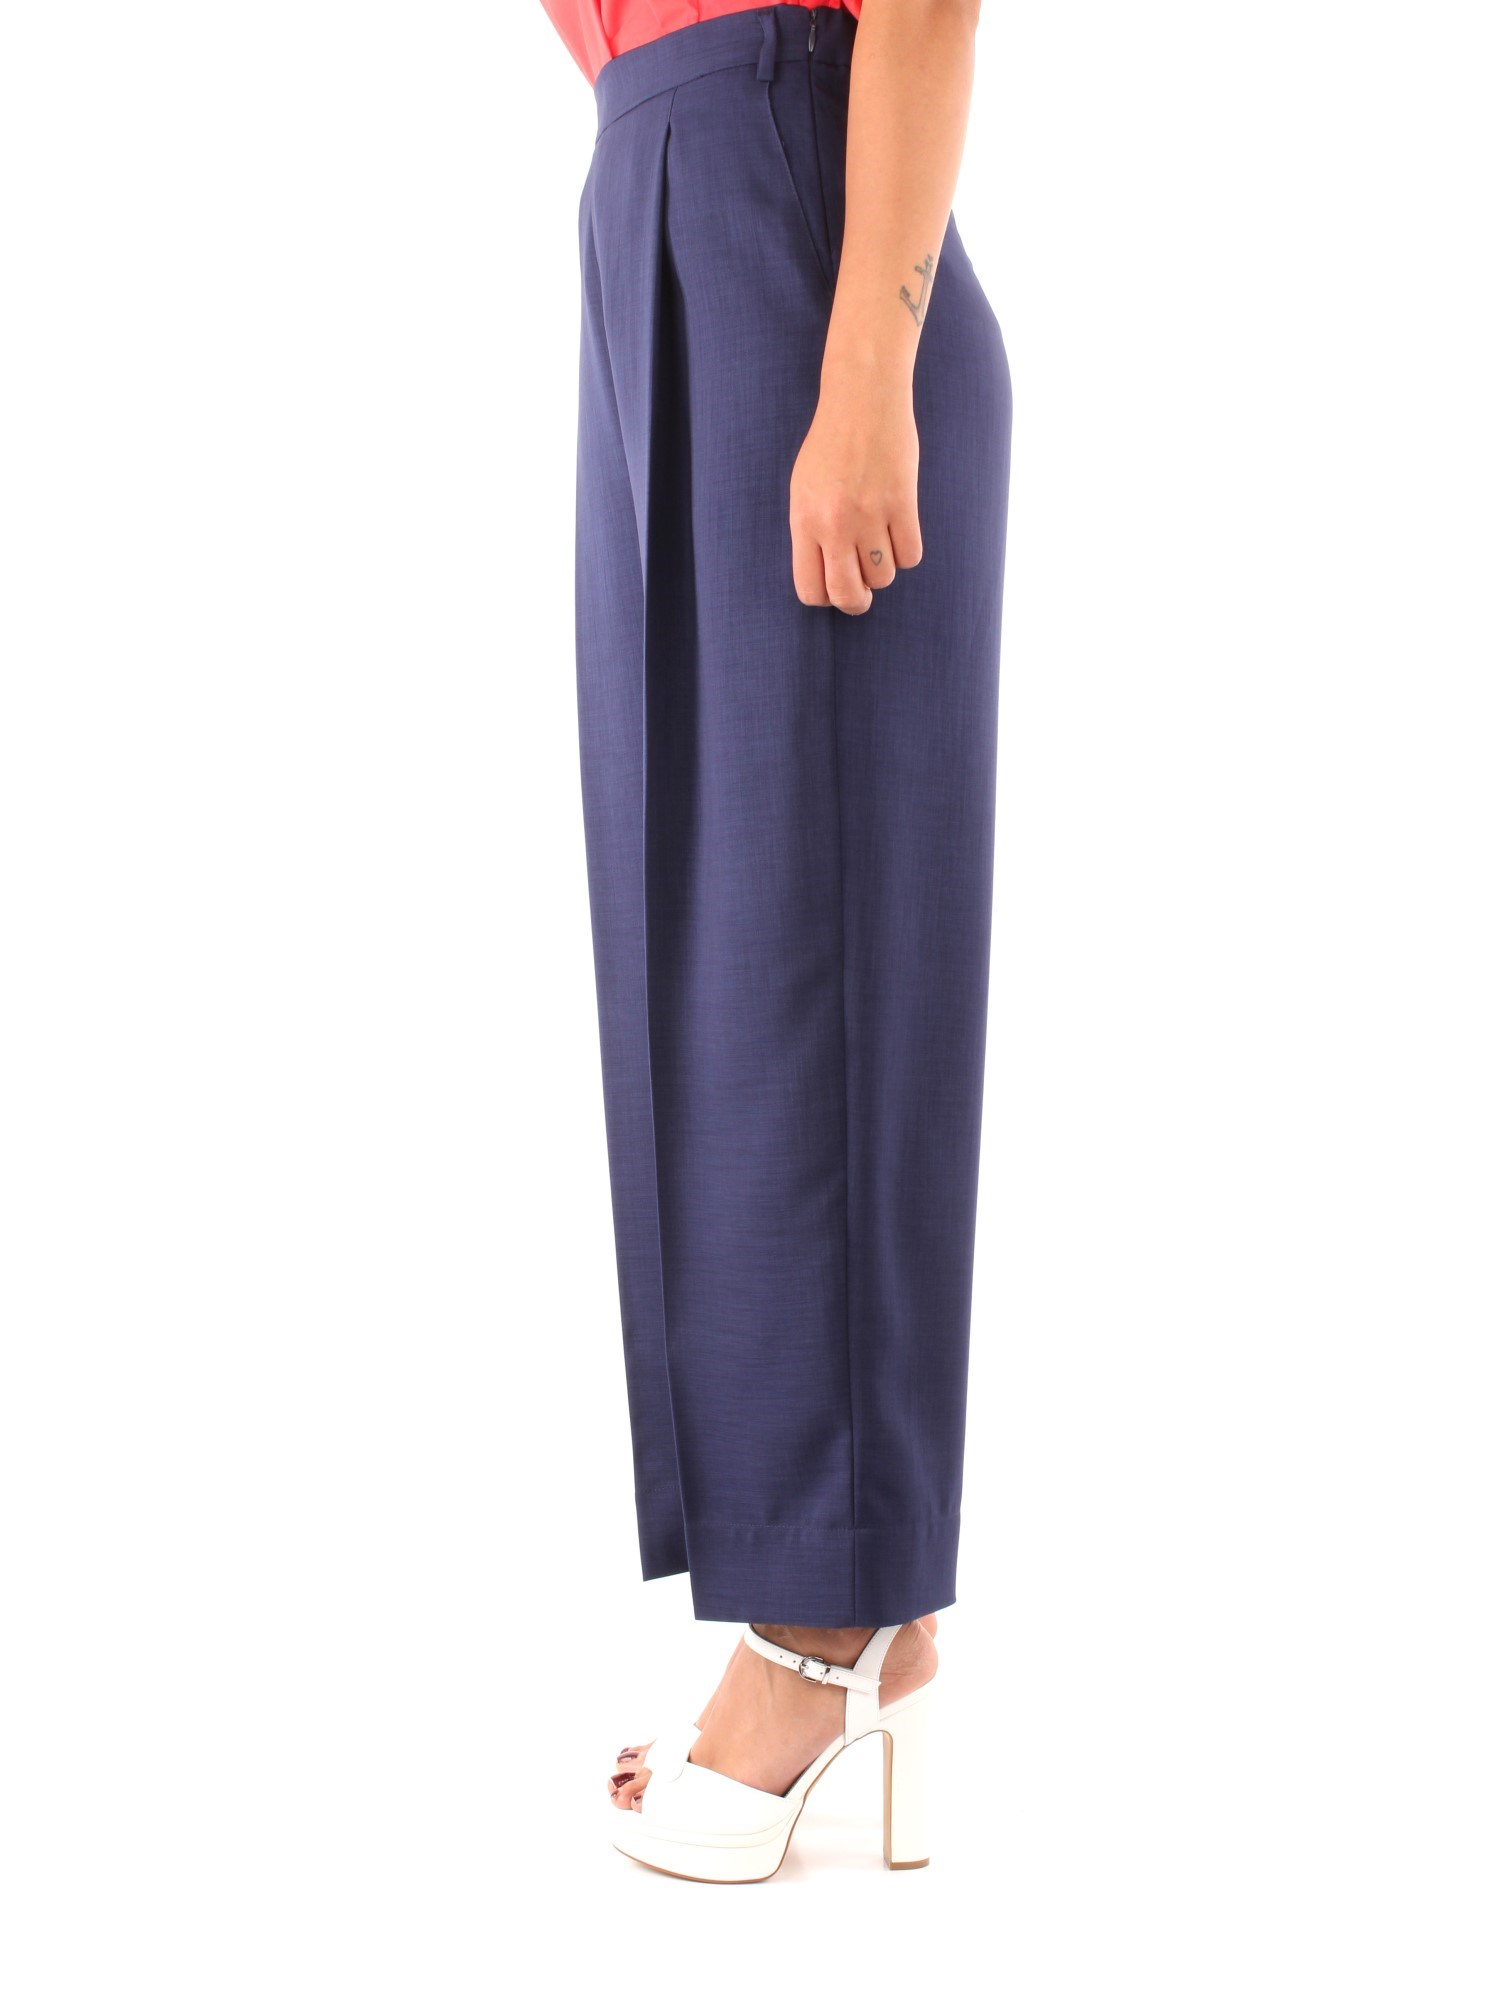 Niu' Clothing Woman Chino BLUE PE19201T83